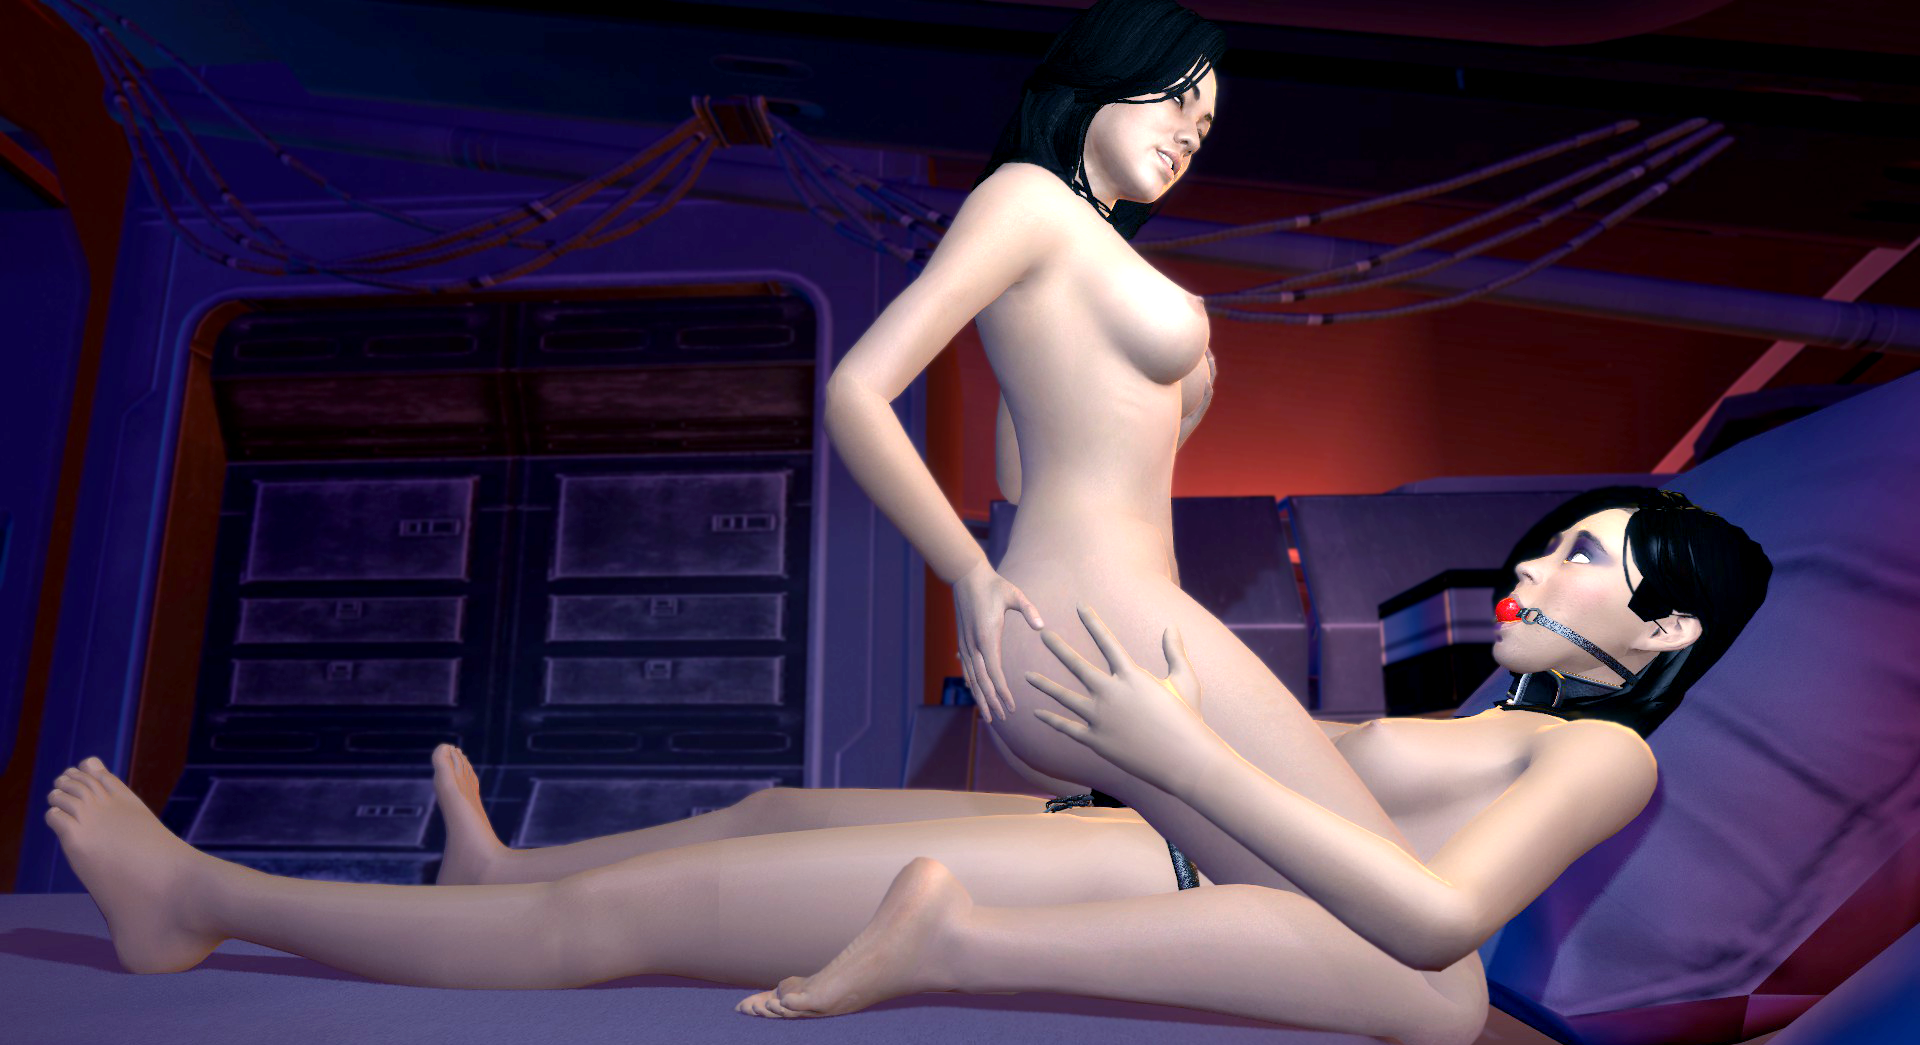 Mass effect nude modding nsfw pic